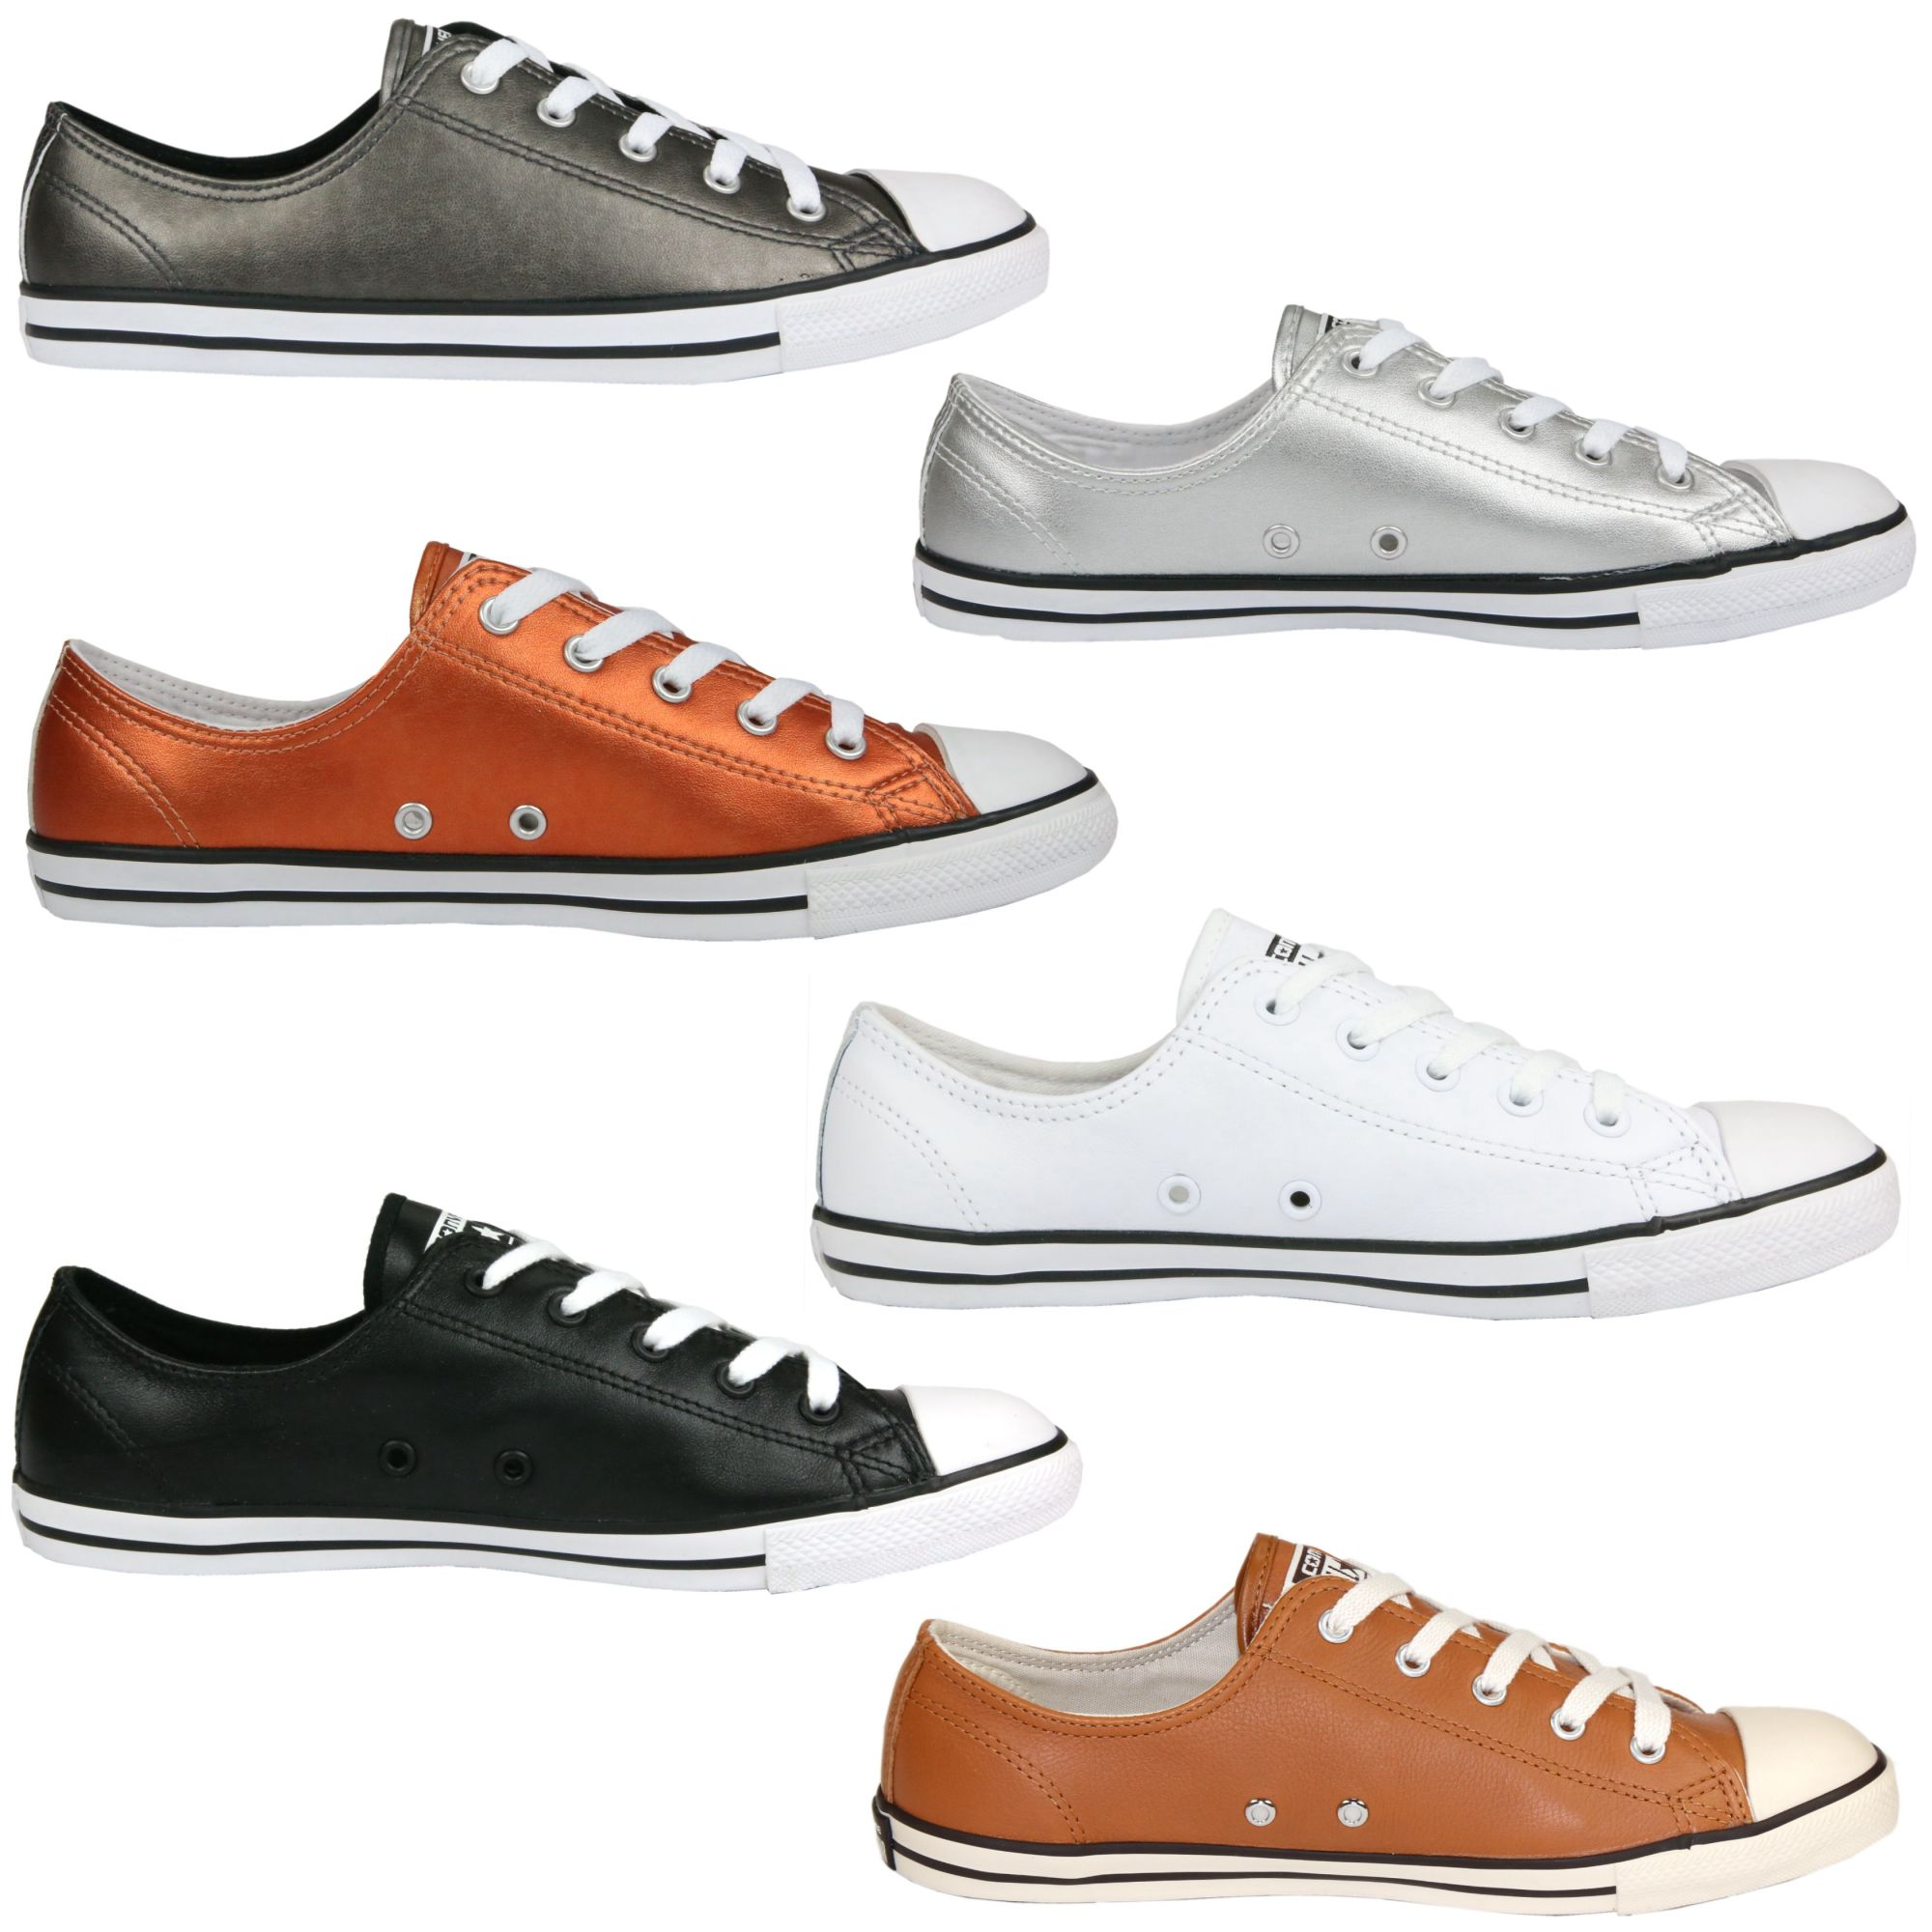 Converse Chuck Taylor All Star Dainty Ox Leather Schuhe Sneaker